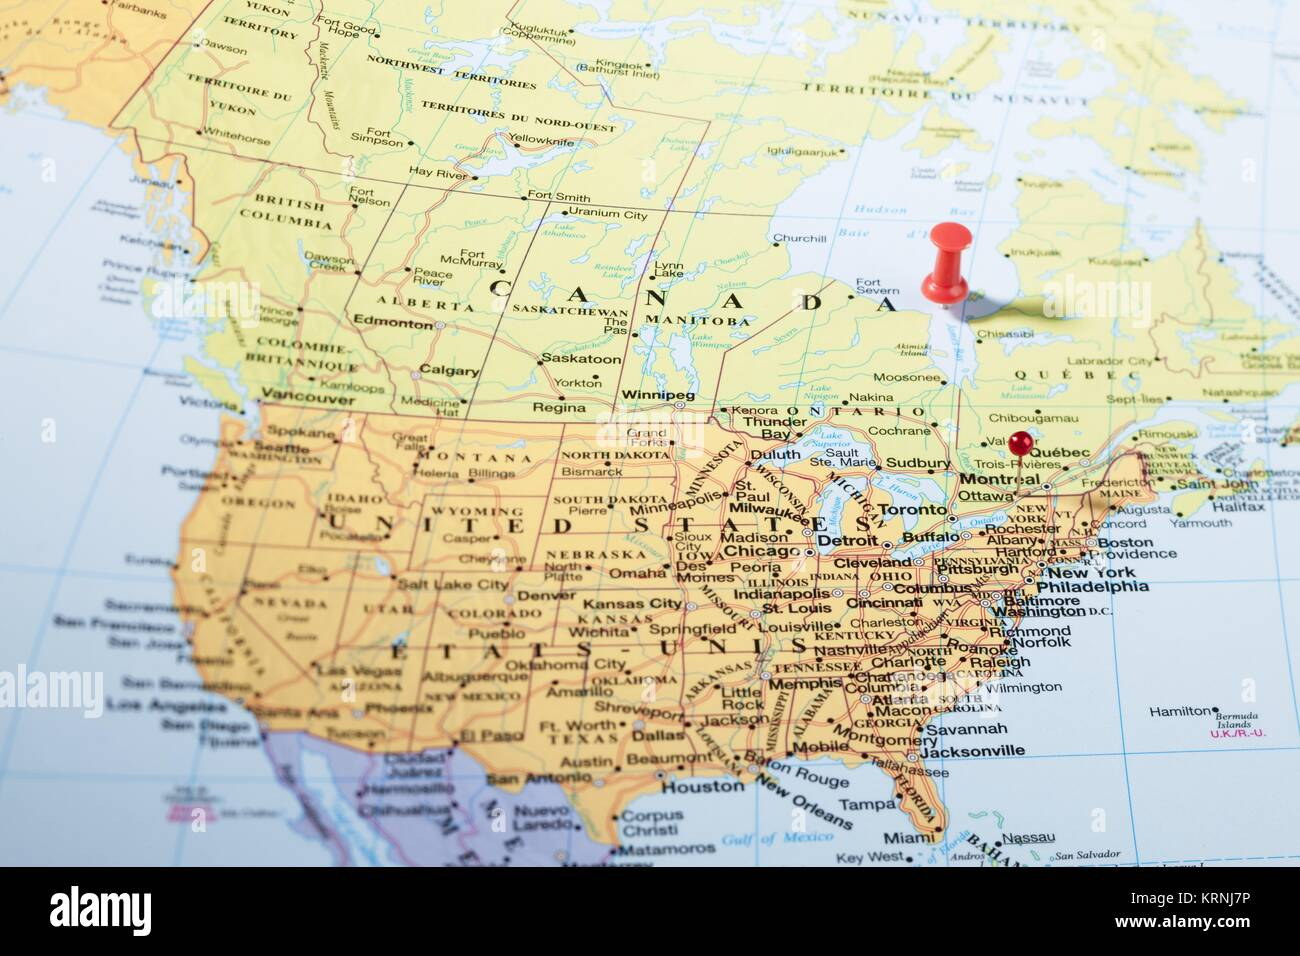 Canada simple map stock photos canada simple map stock images alamy united states and canada on world map stock image gumiabroncs Images